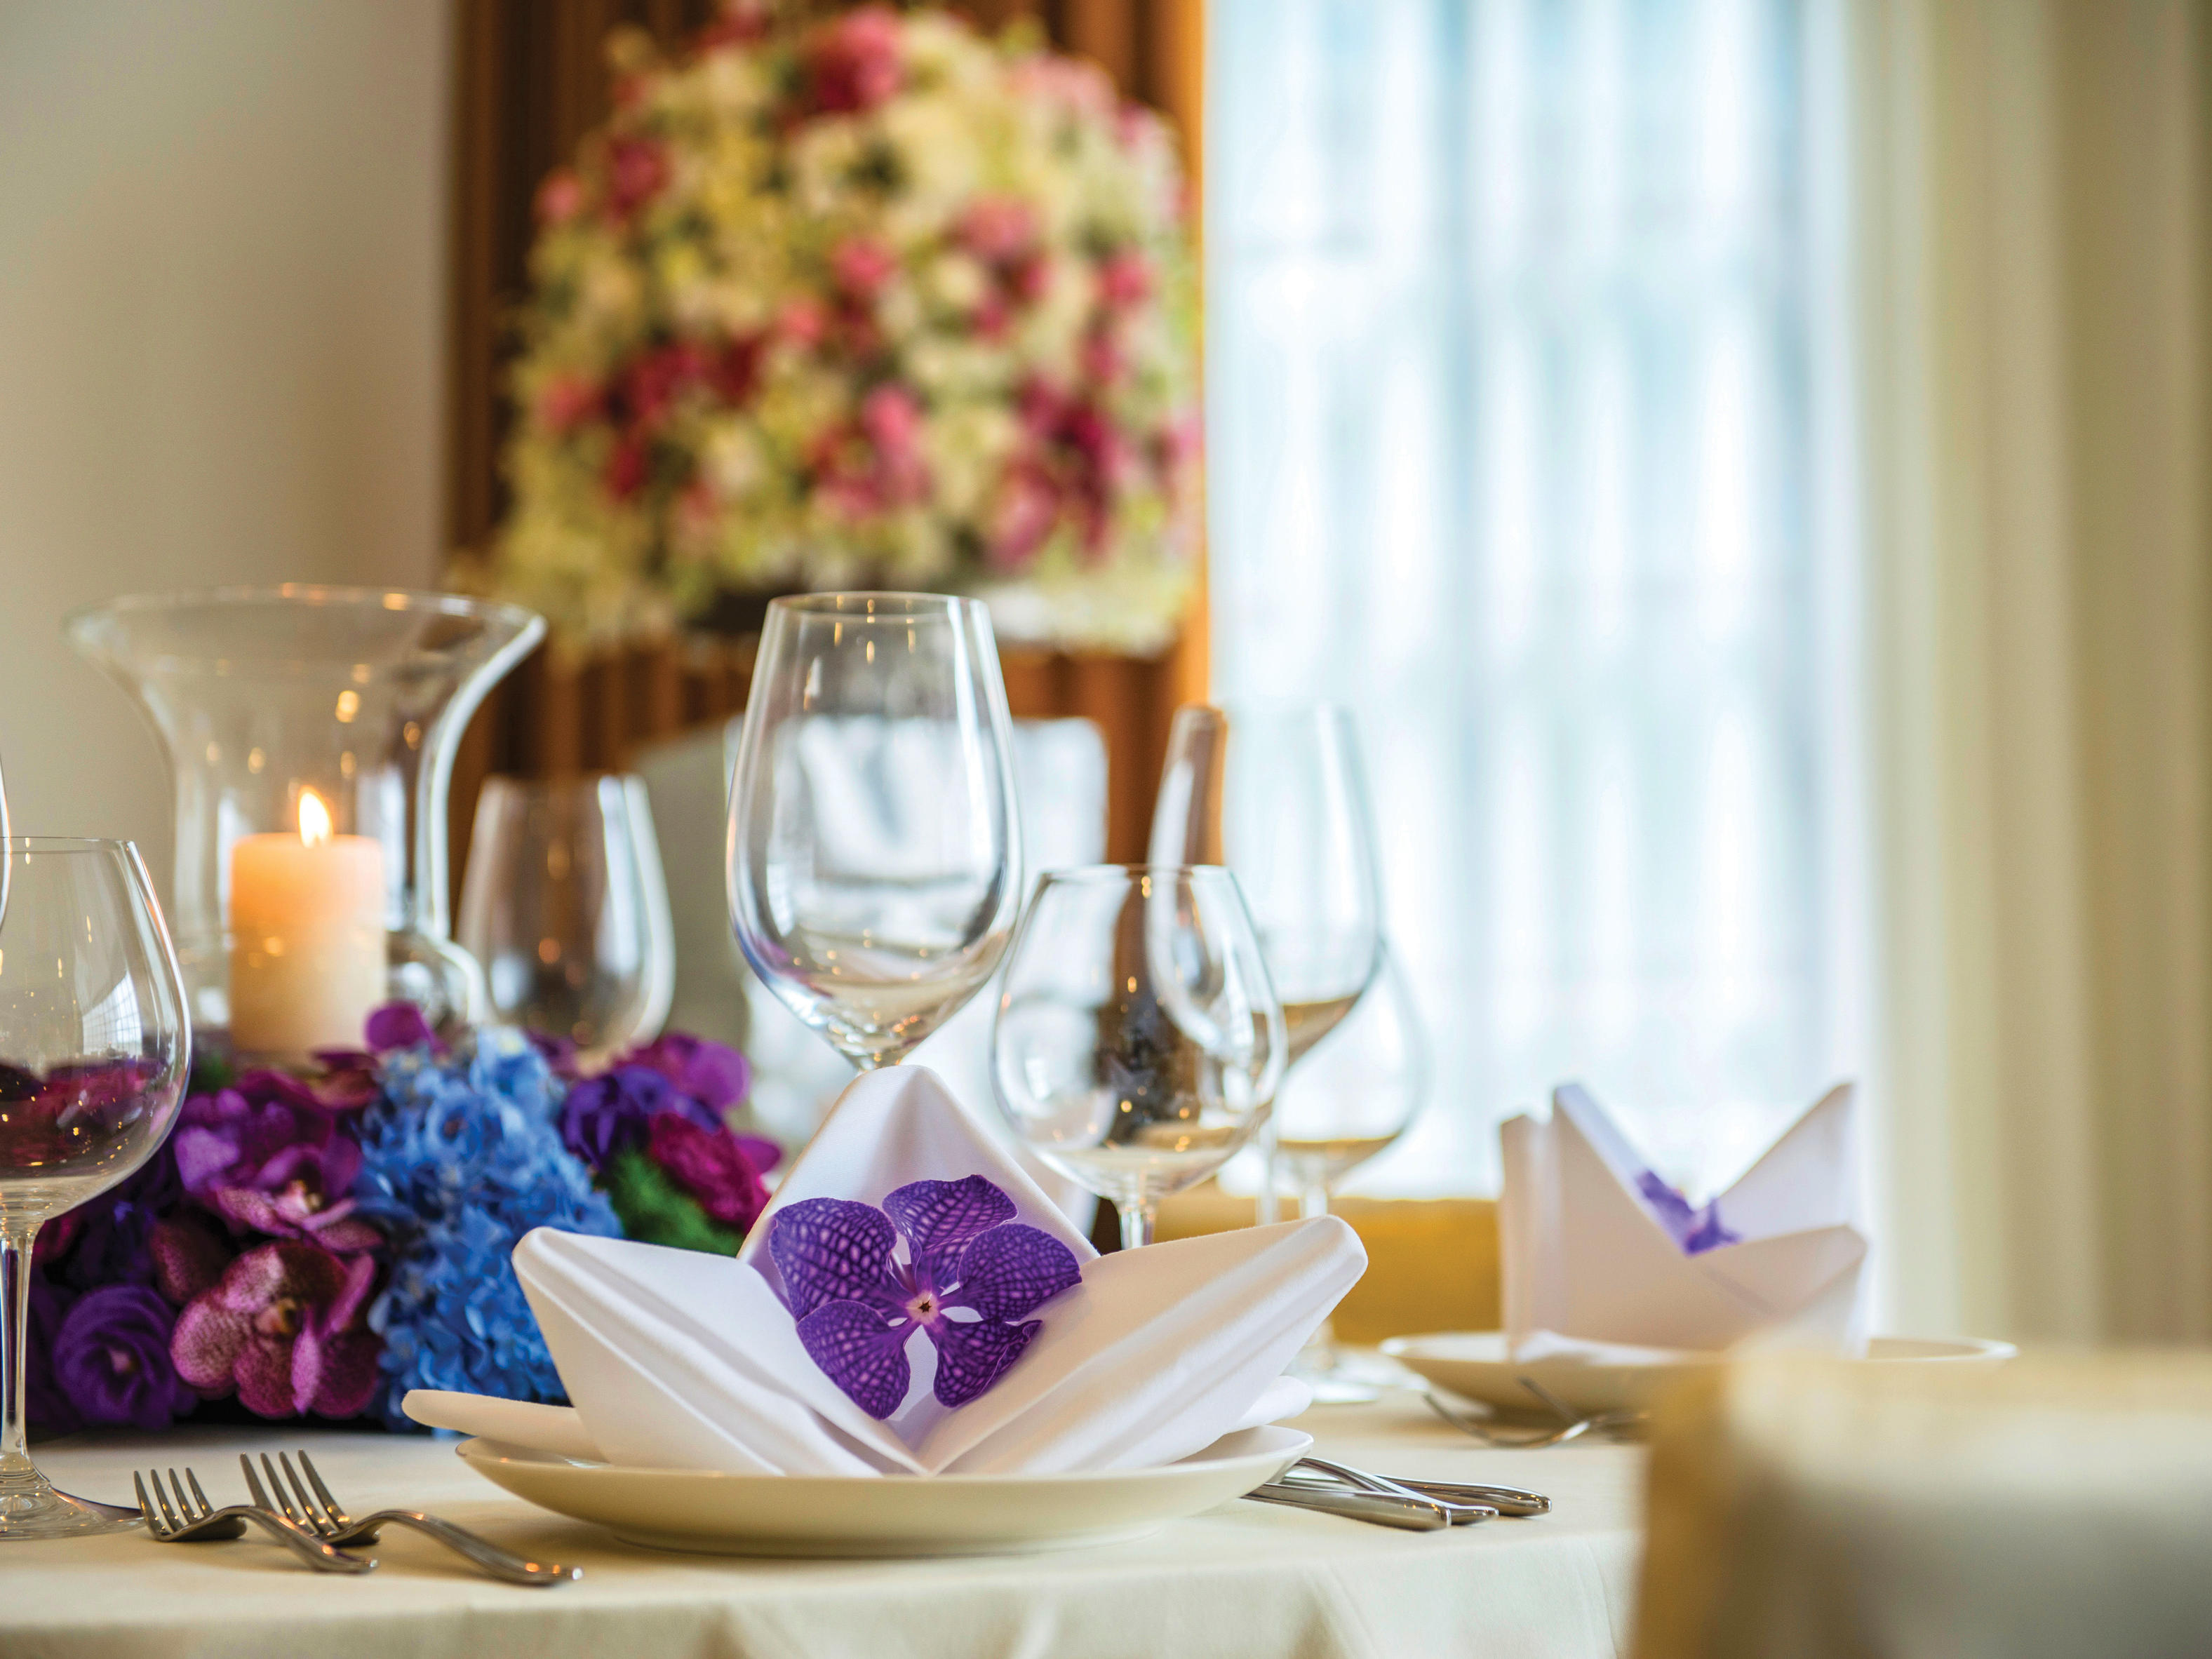 A view of a table decoration at Chatrium Hospitality Hotels